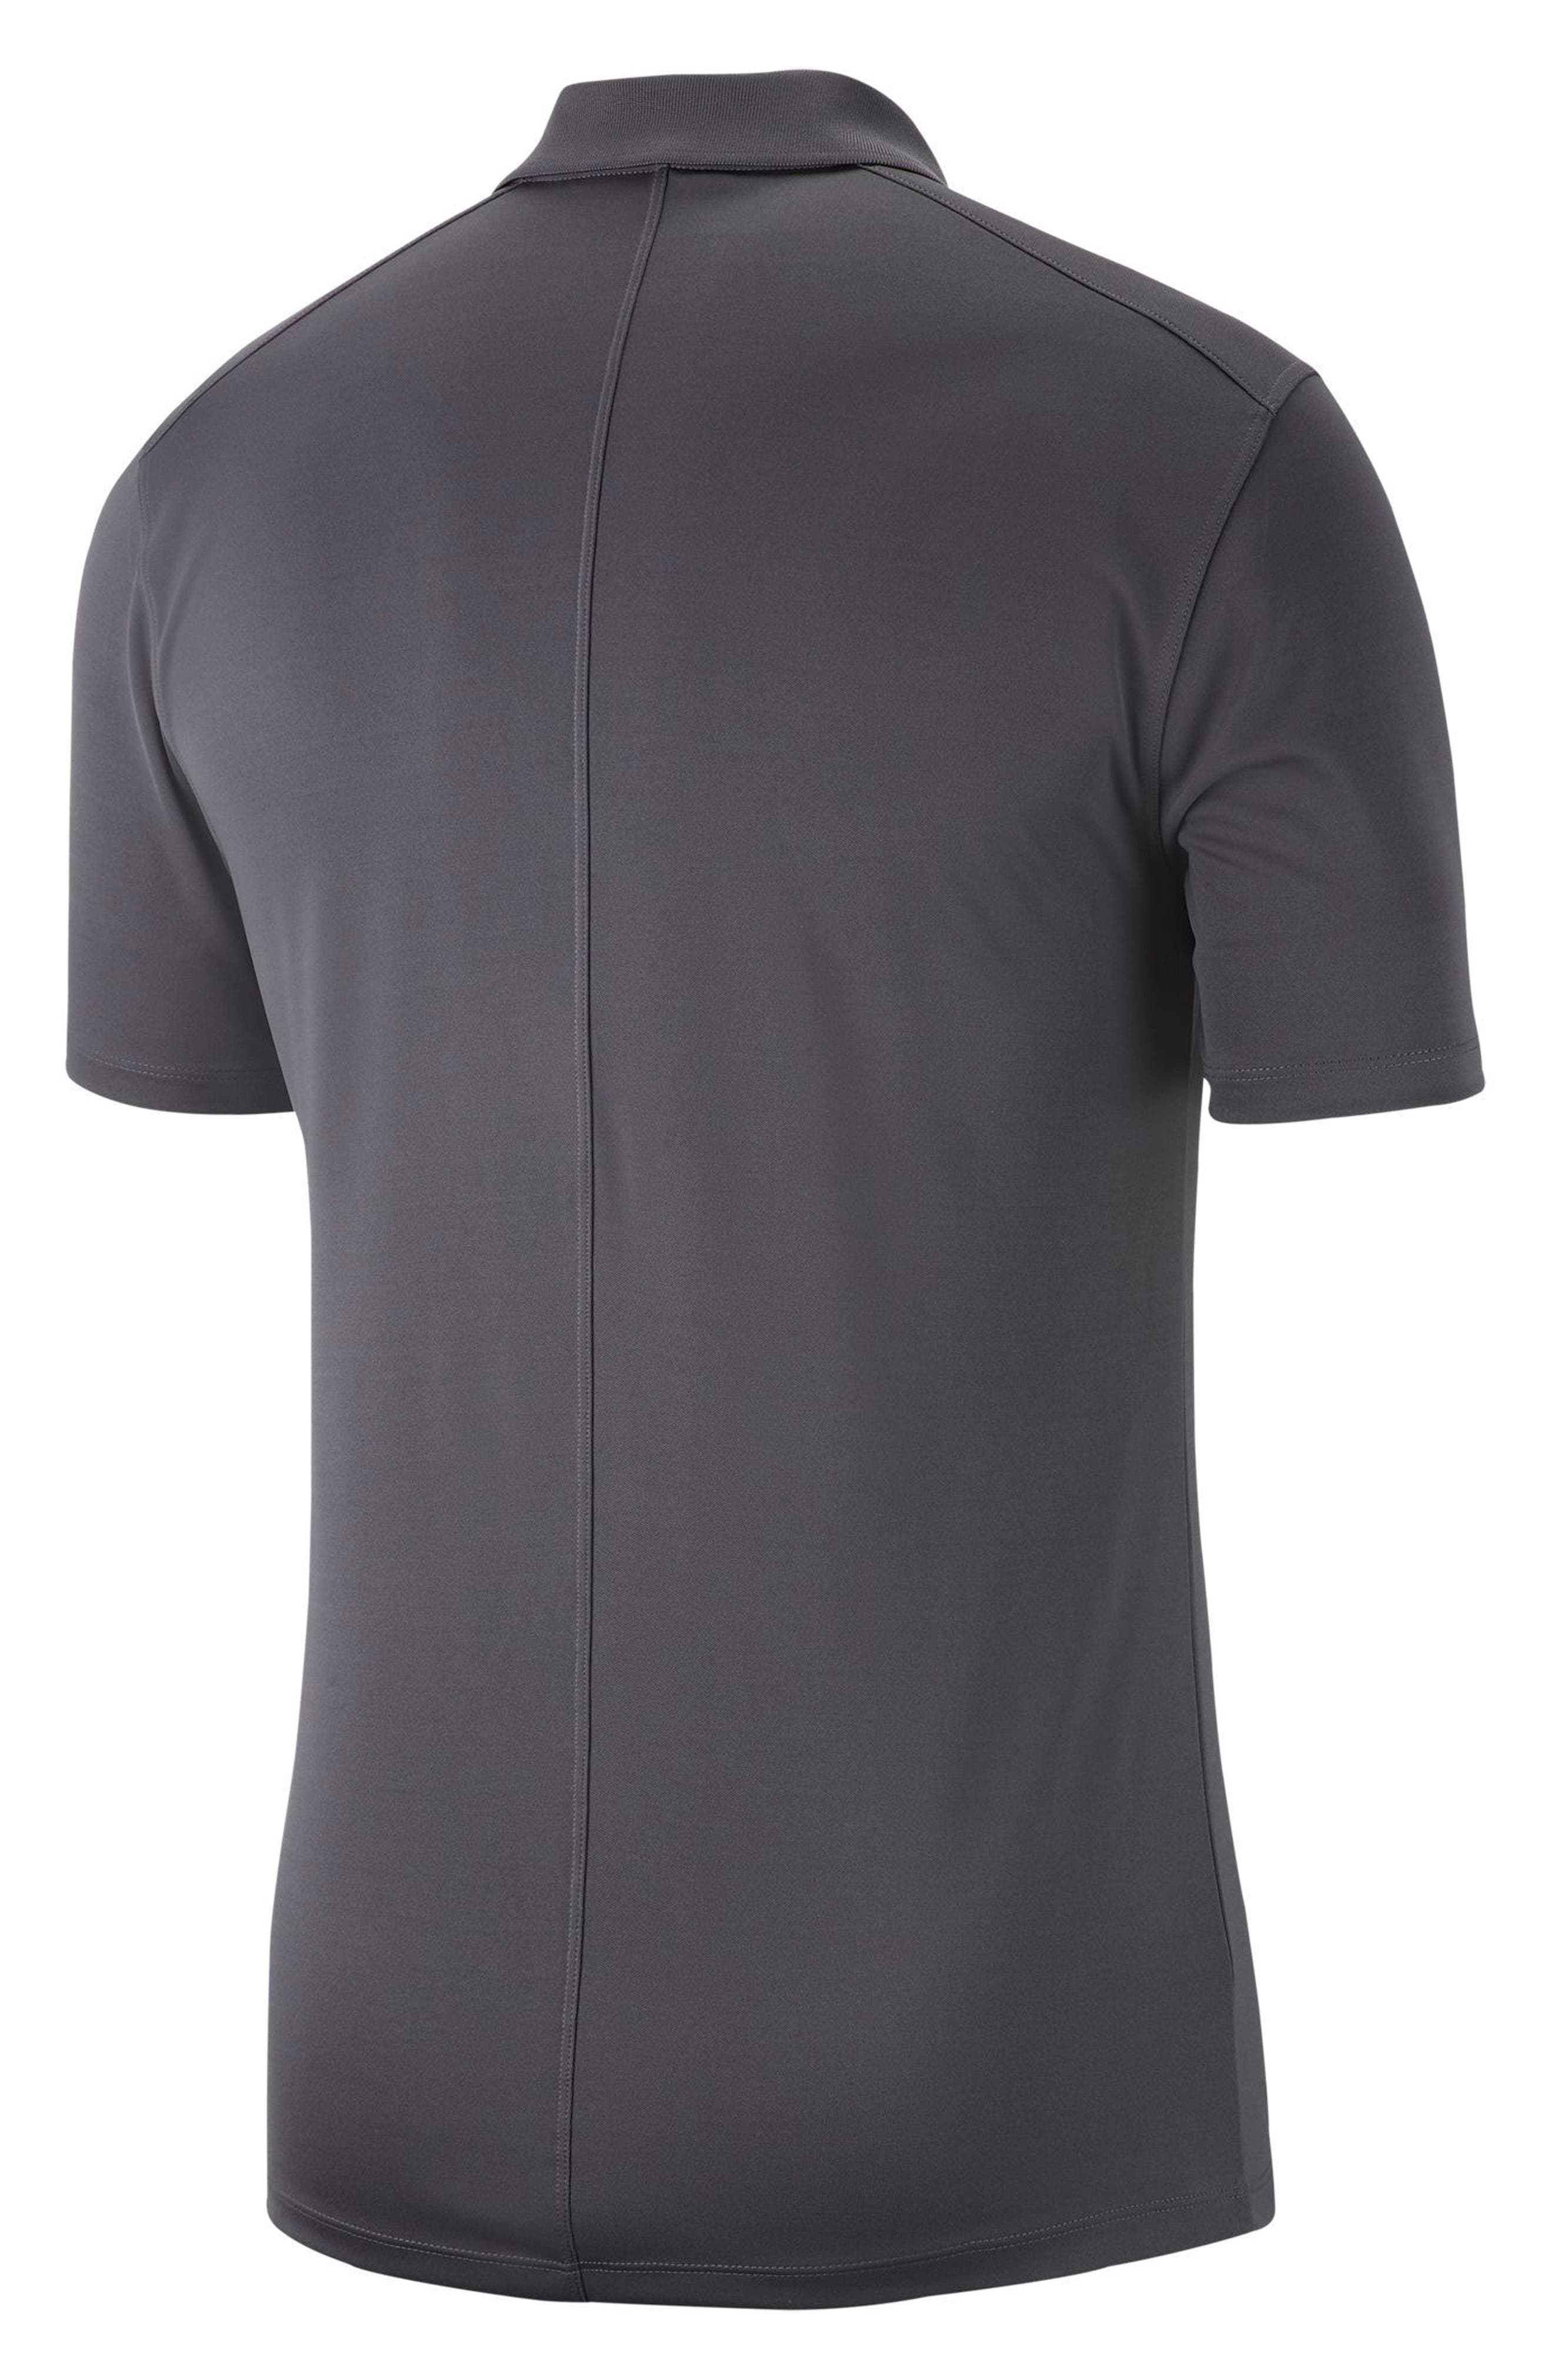 Dry Victory Golf Polo,                             Alternate thumbnail 3, color,                             DARK GREY/ BLACK